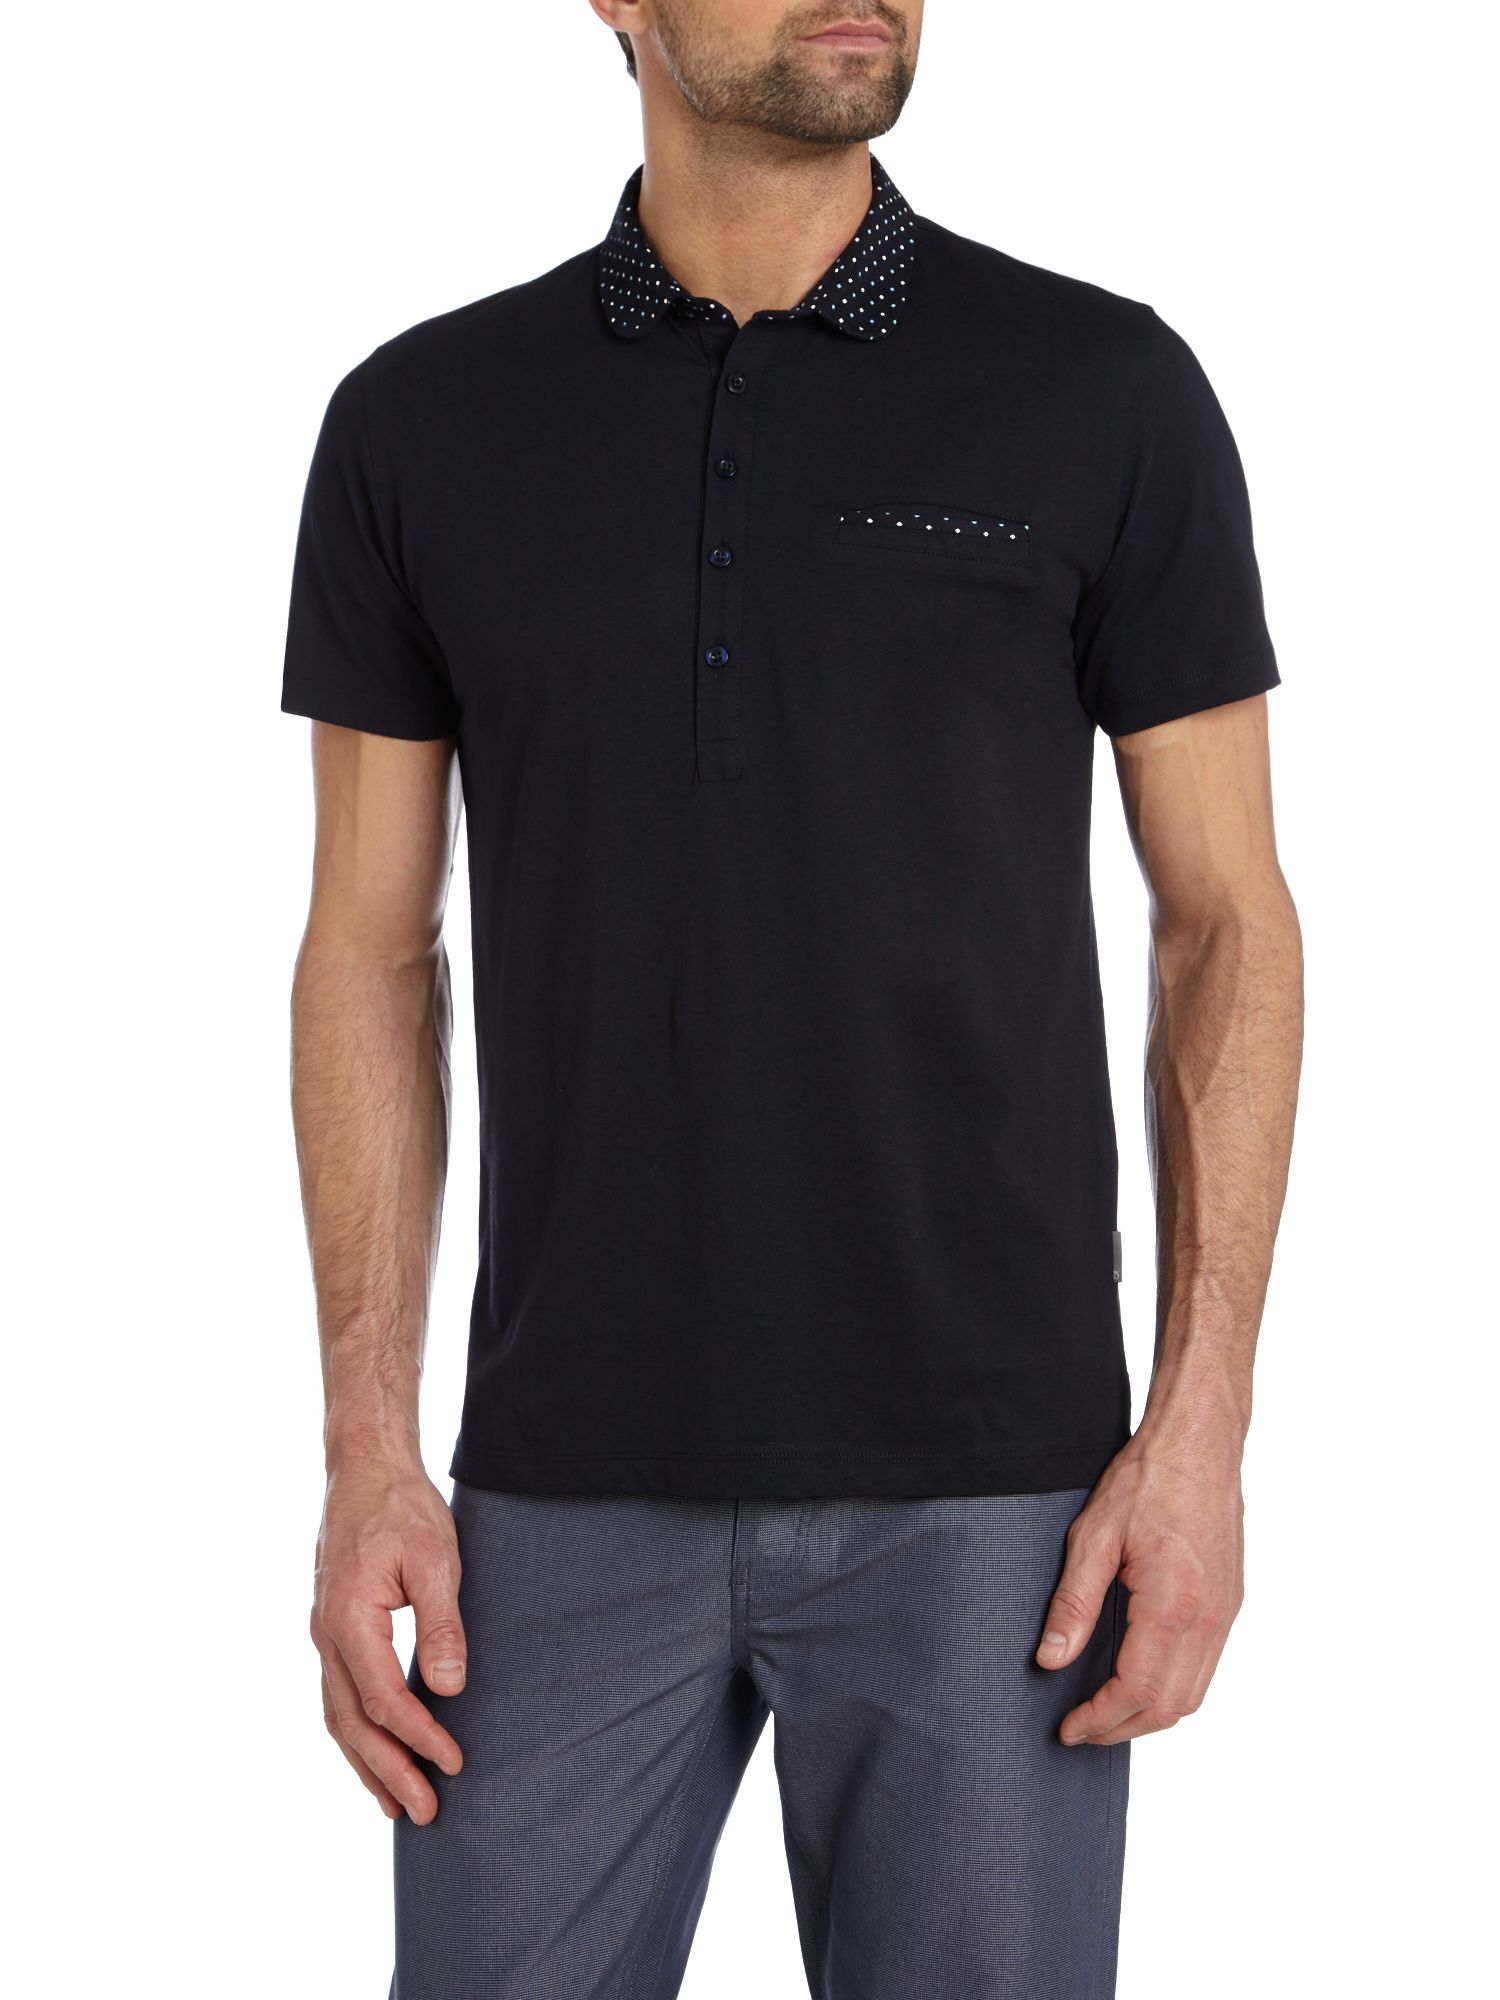 Sanaro polo shirt